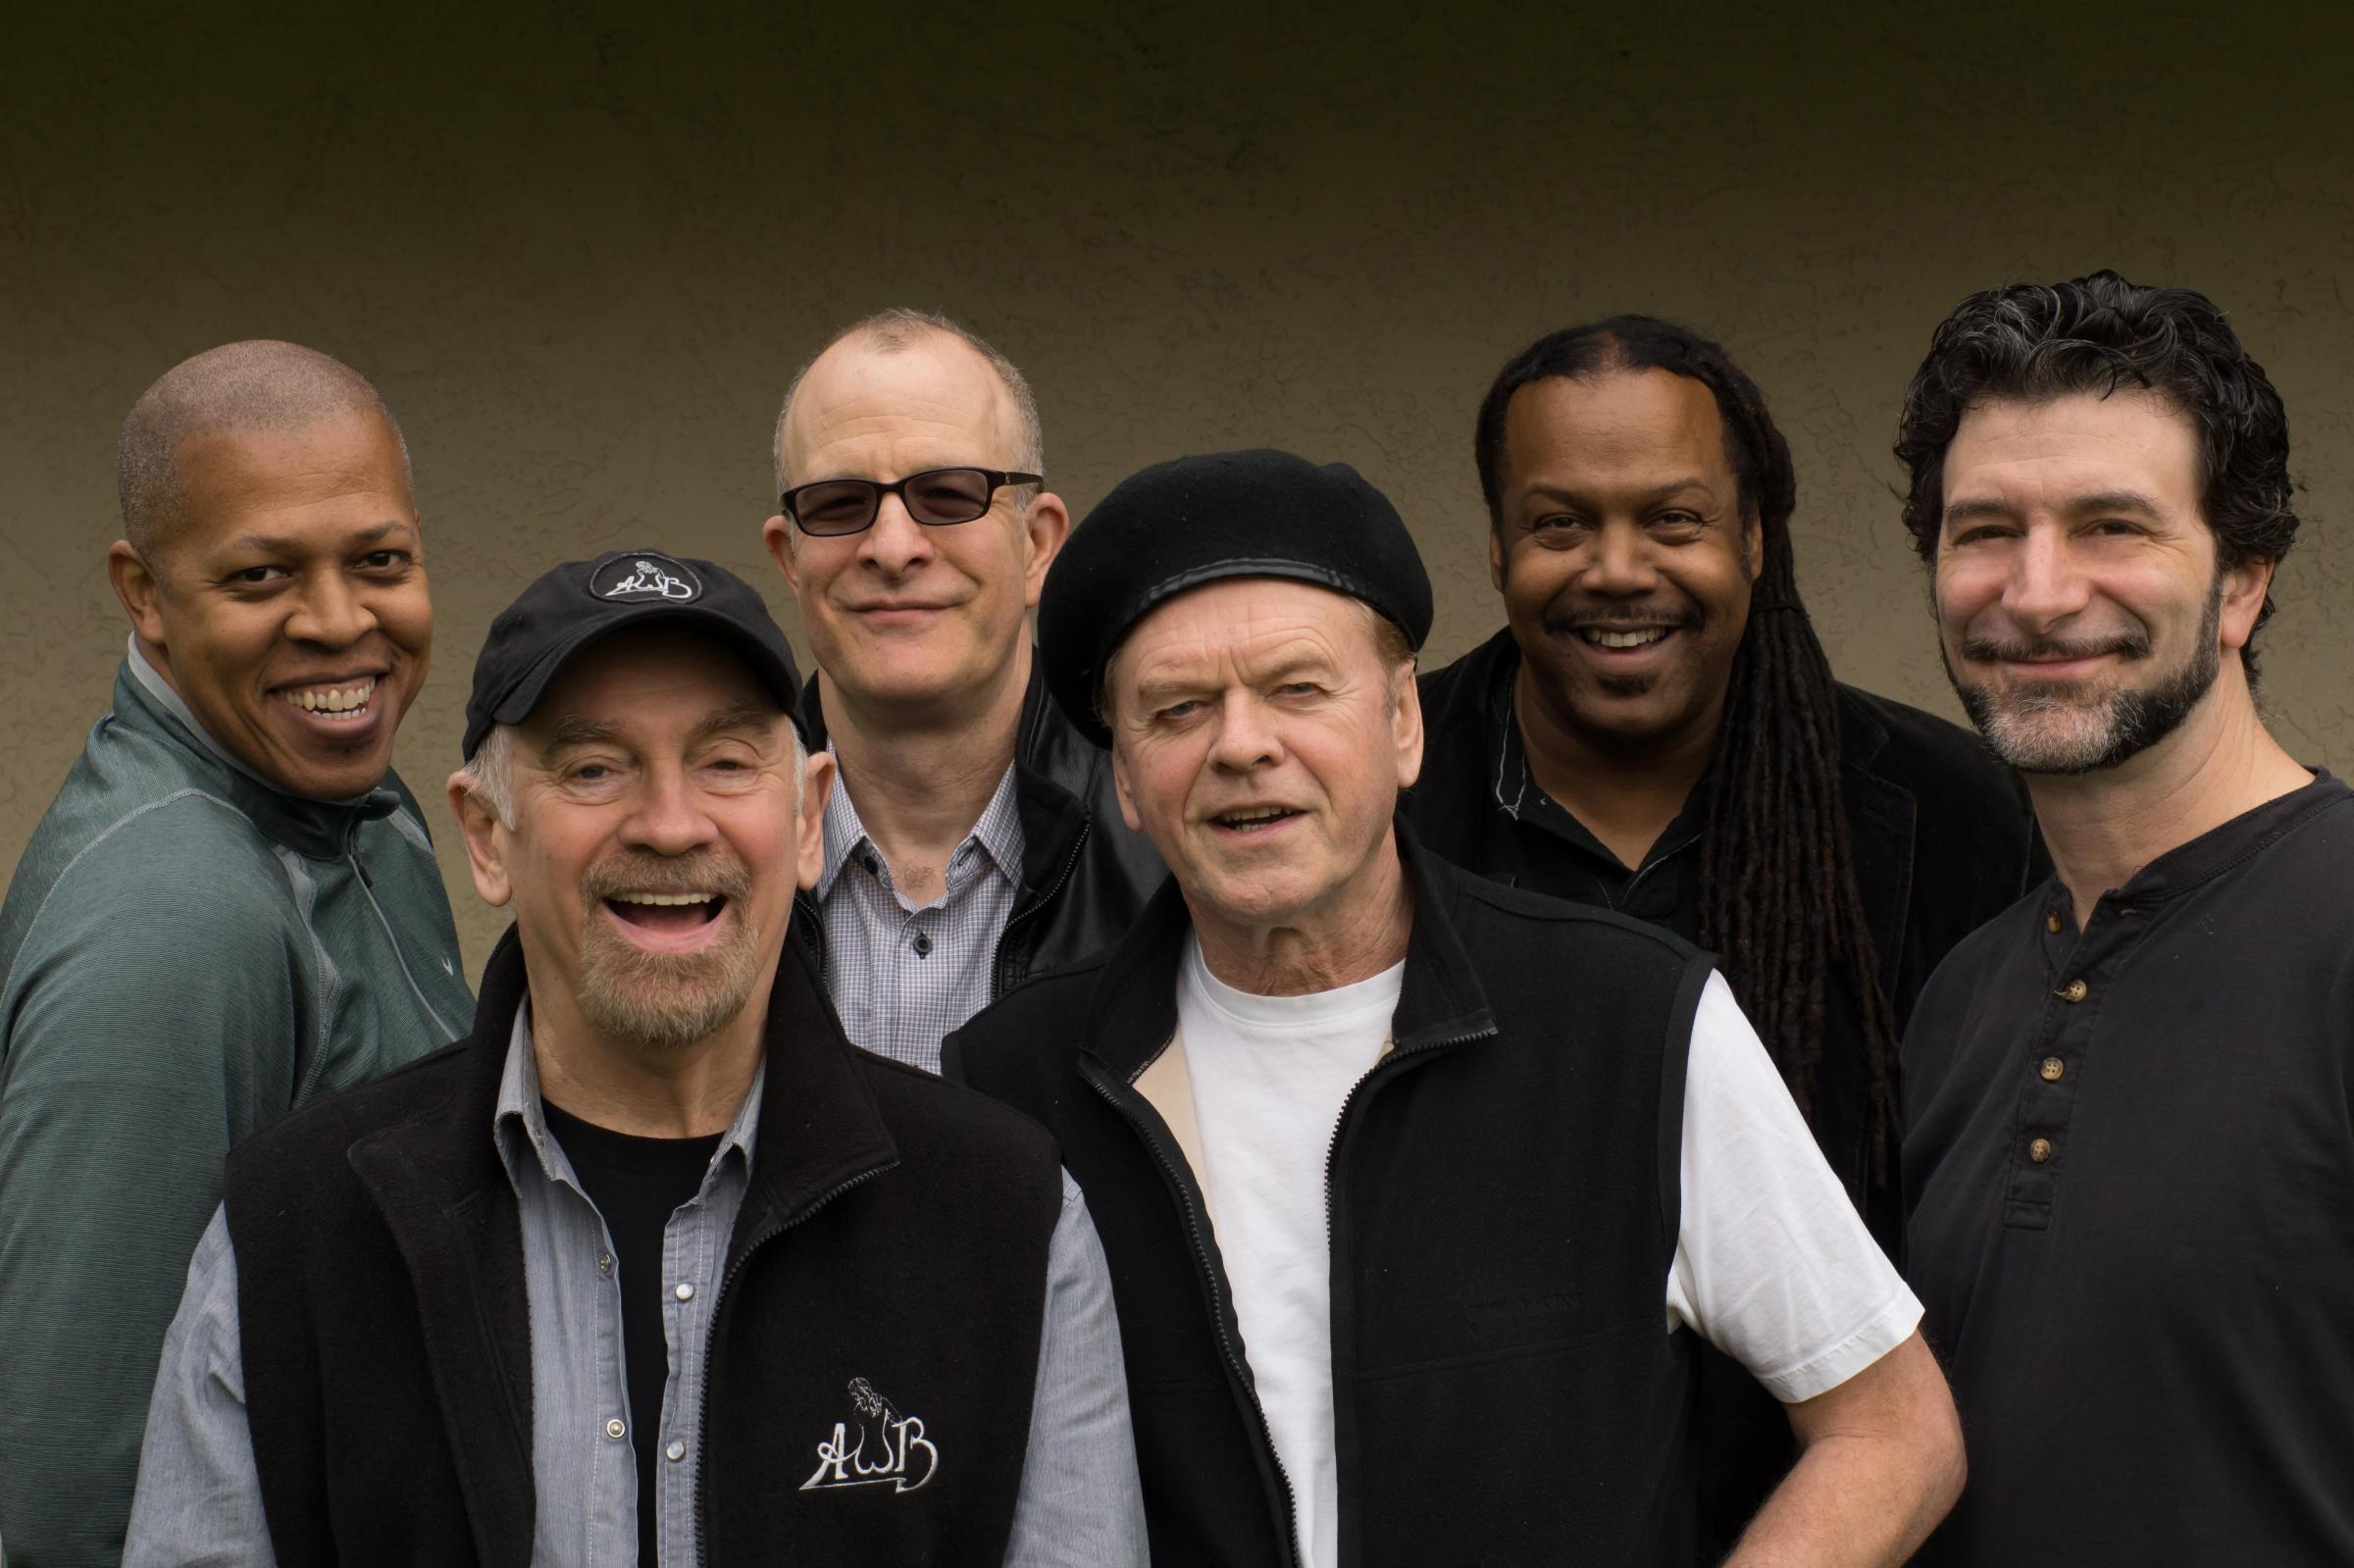 Music review: Average White Band/Kokomo, Royal Festival Hall, London